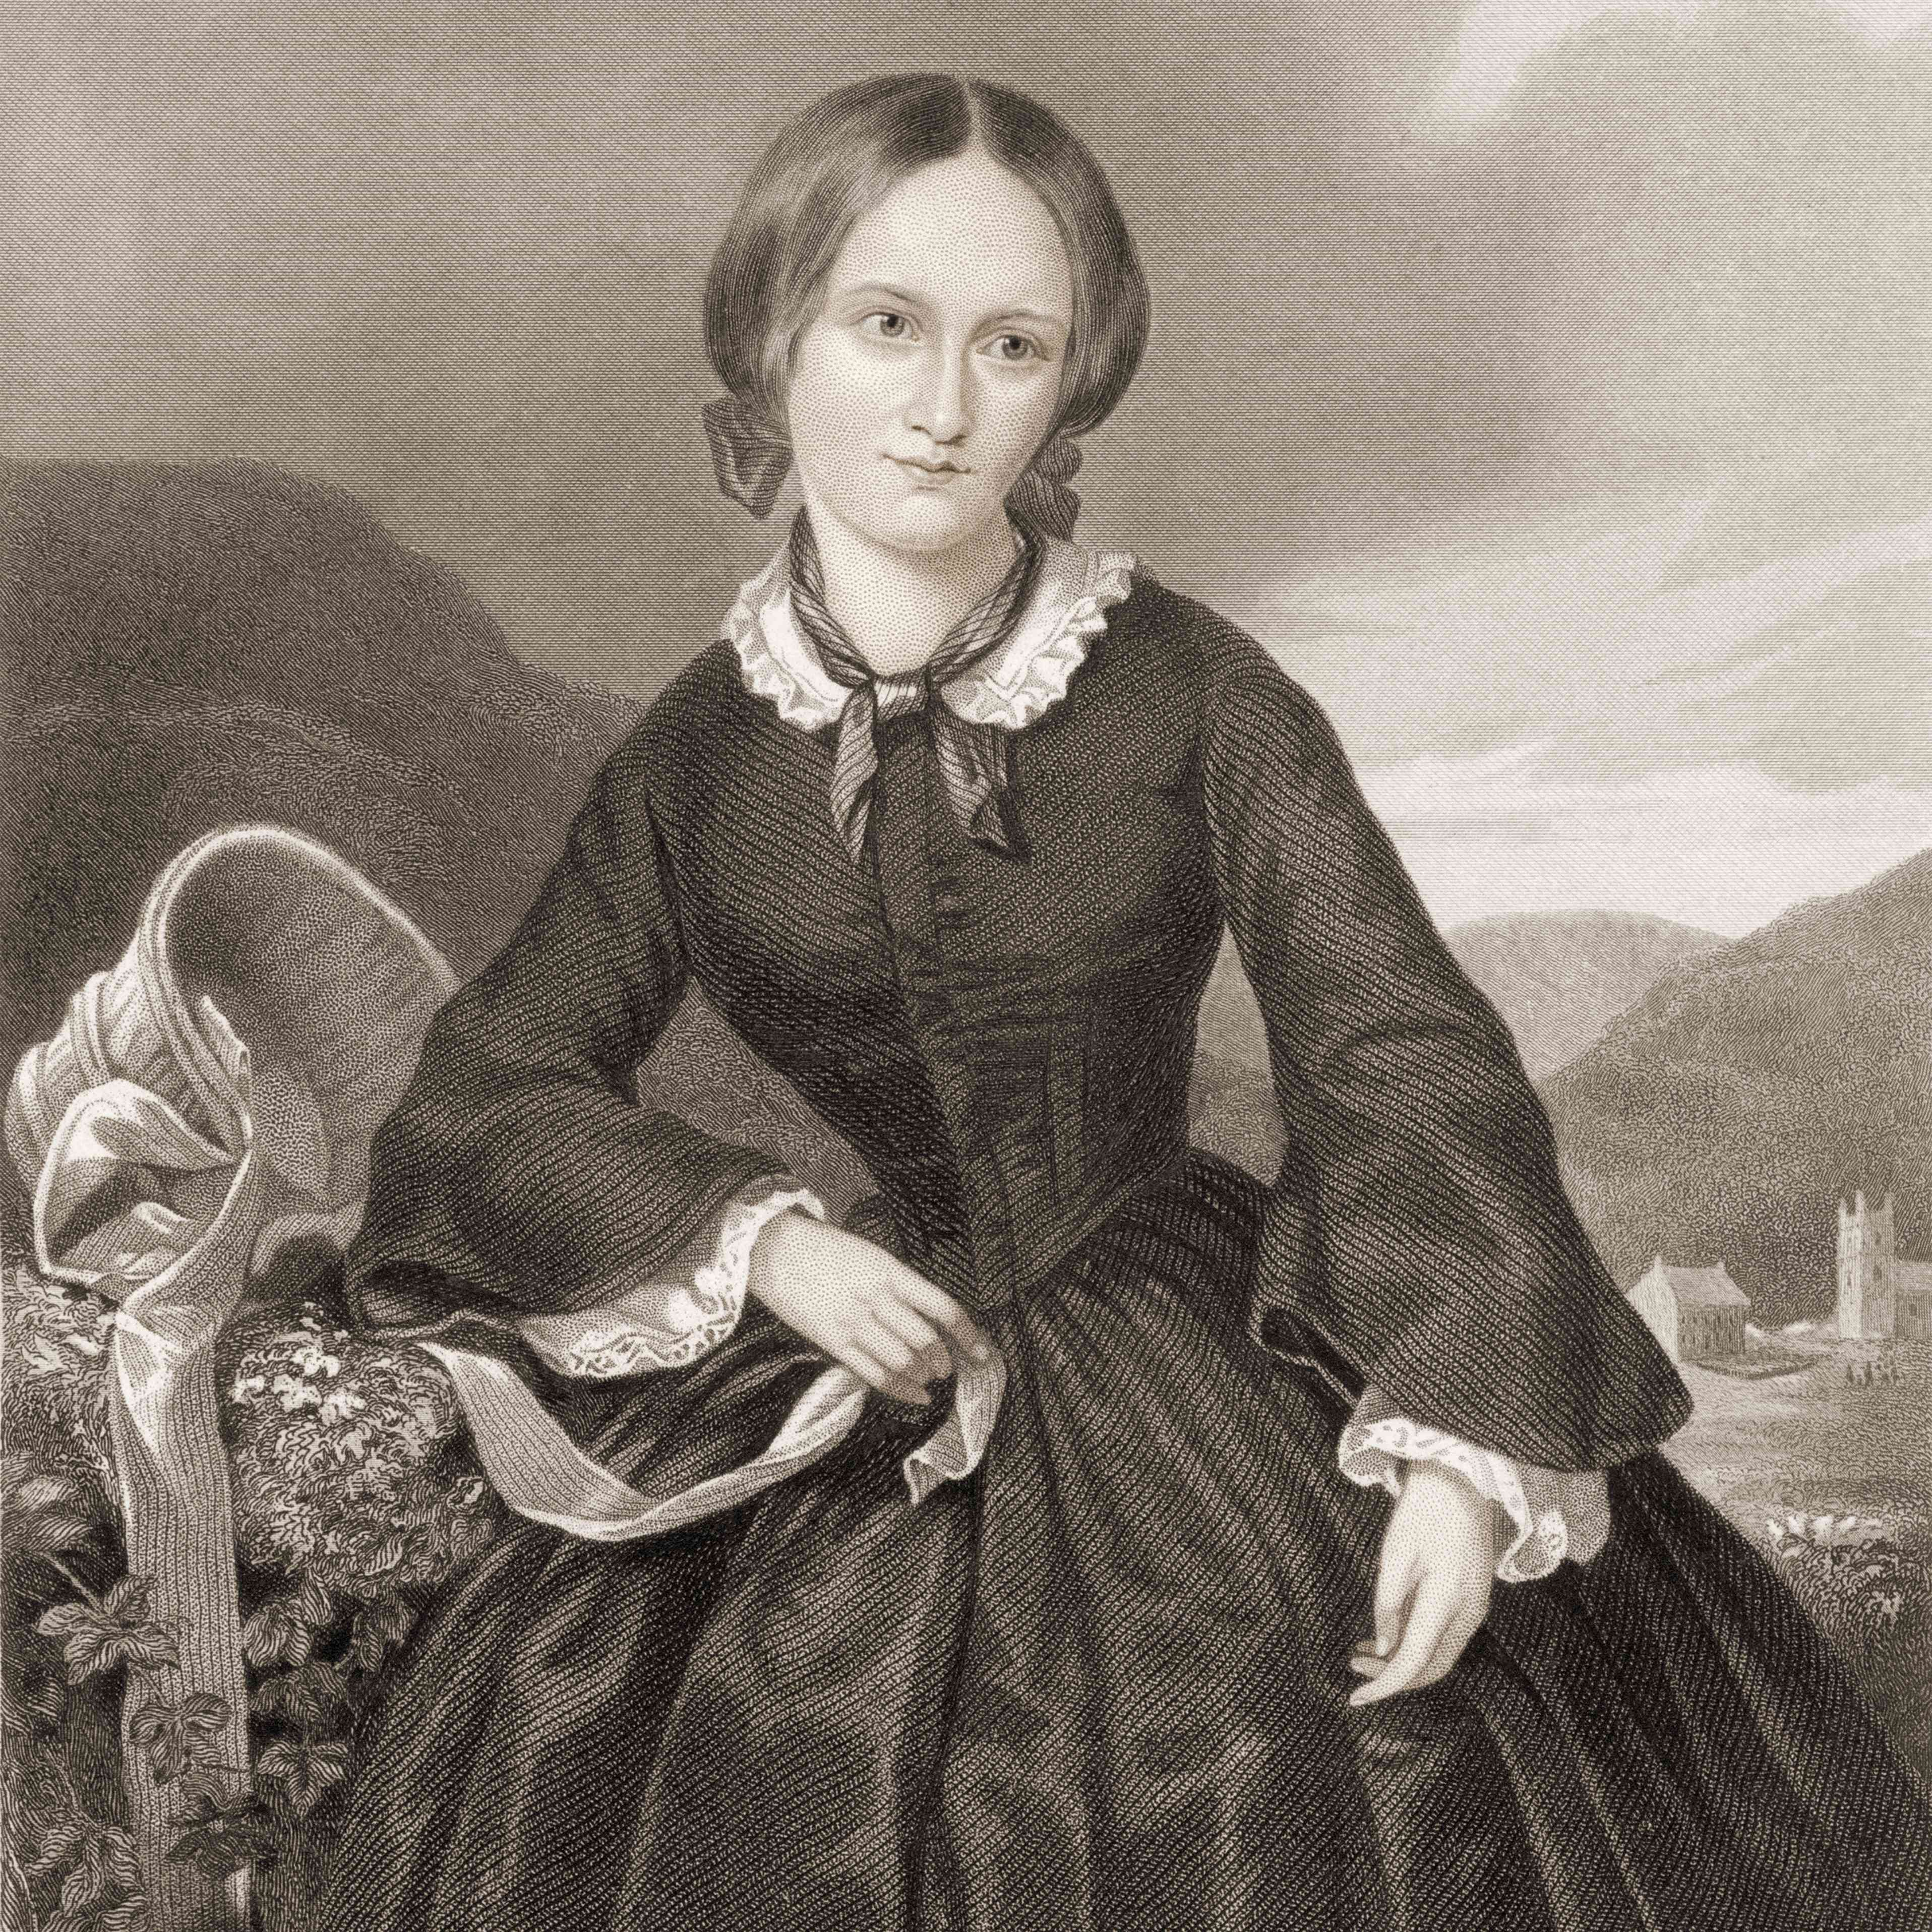 Engraving of Charlotte Bronte in a black dress